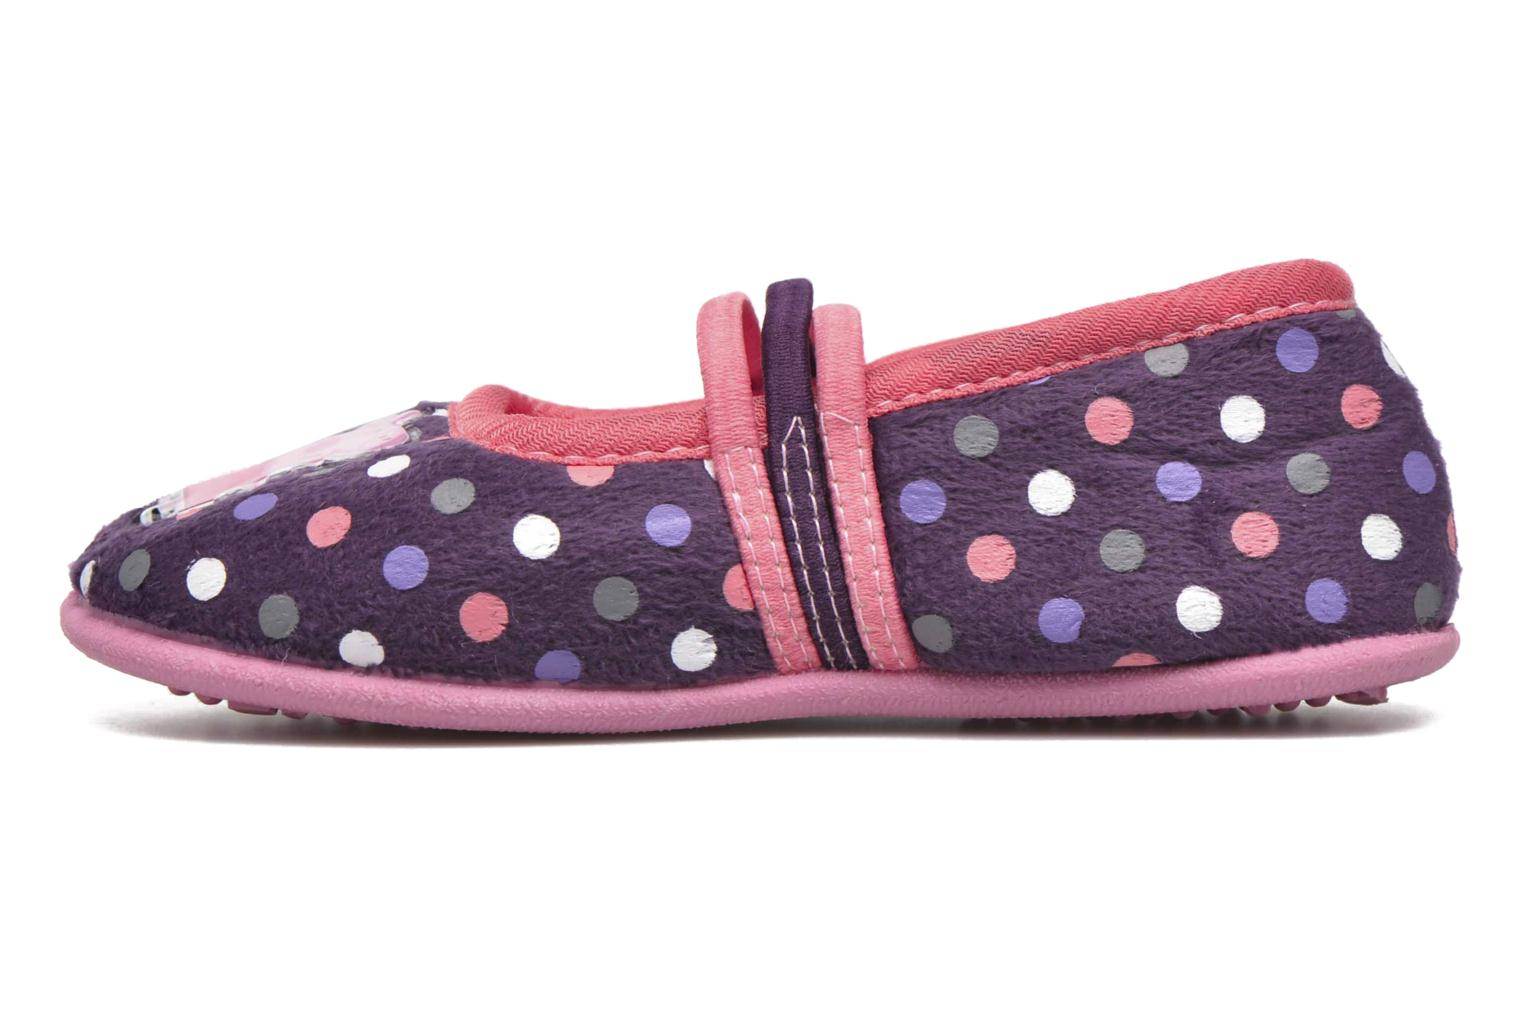 Chaussons Peppa Pig Linda Violet vue face